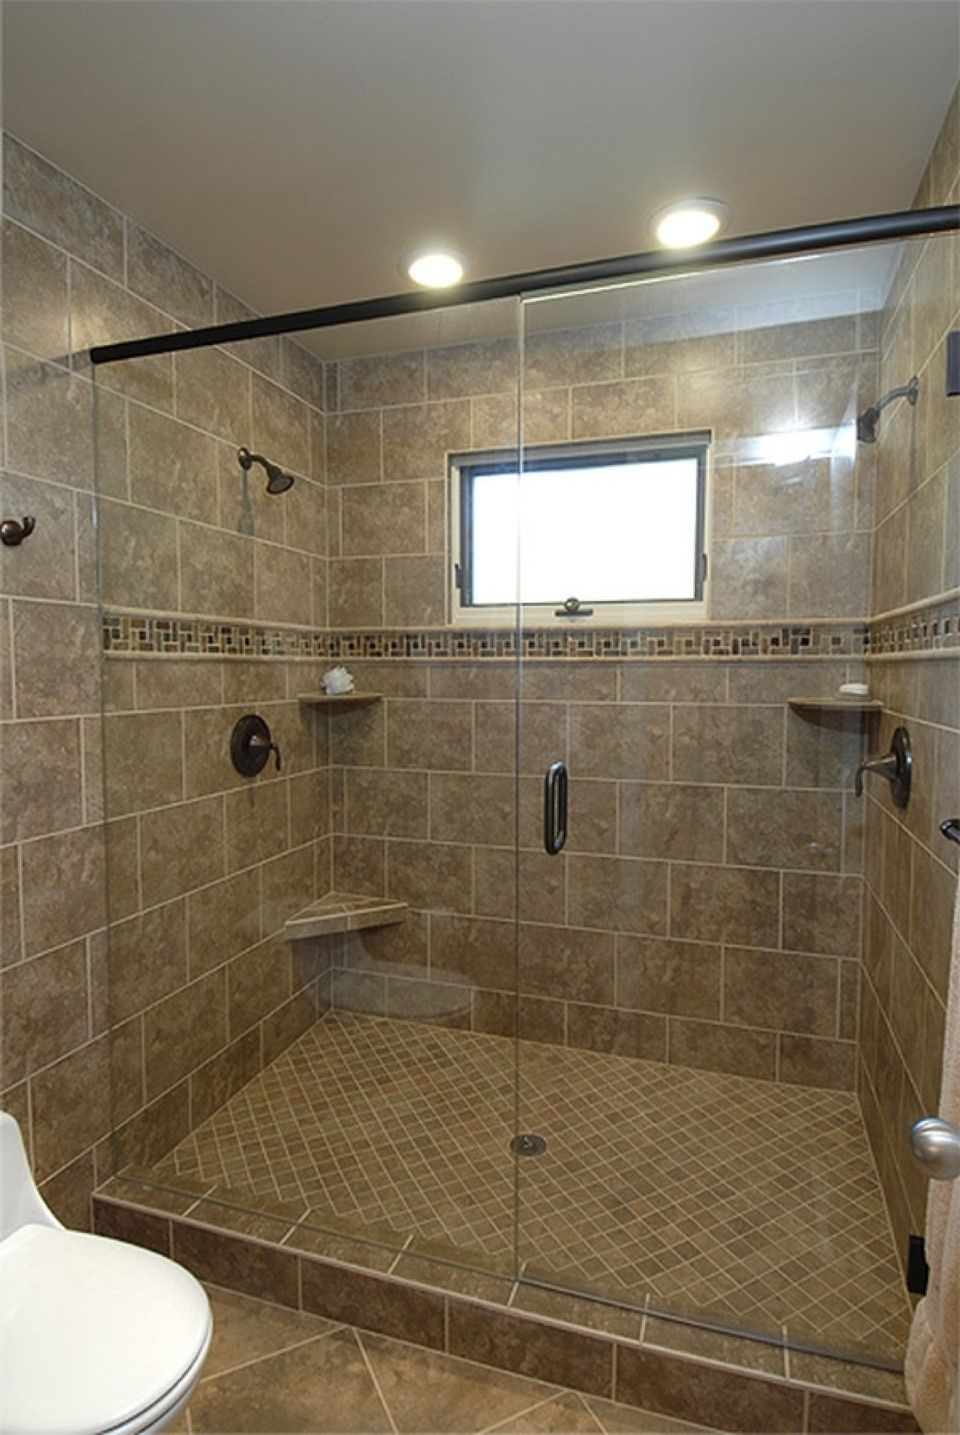 showers with bullnose around window